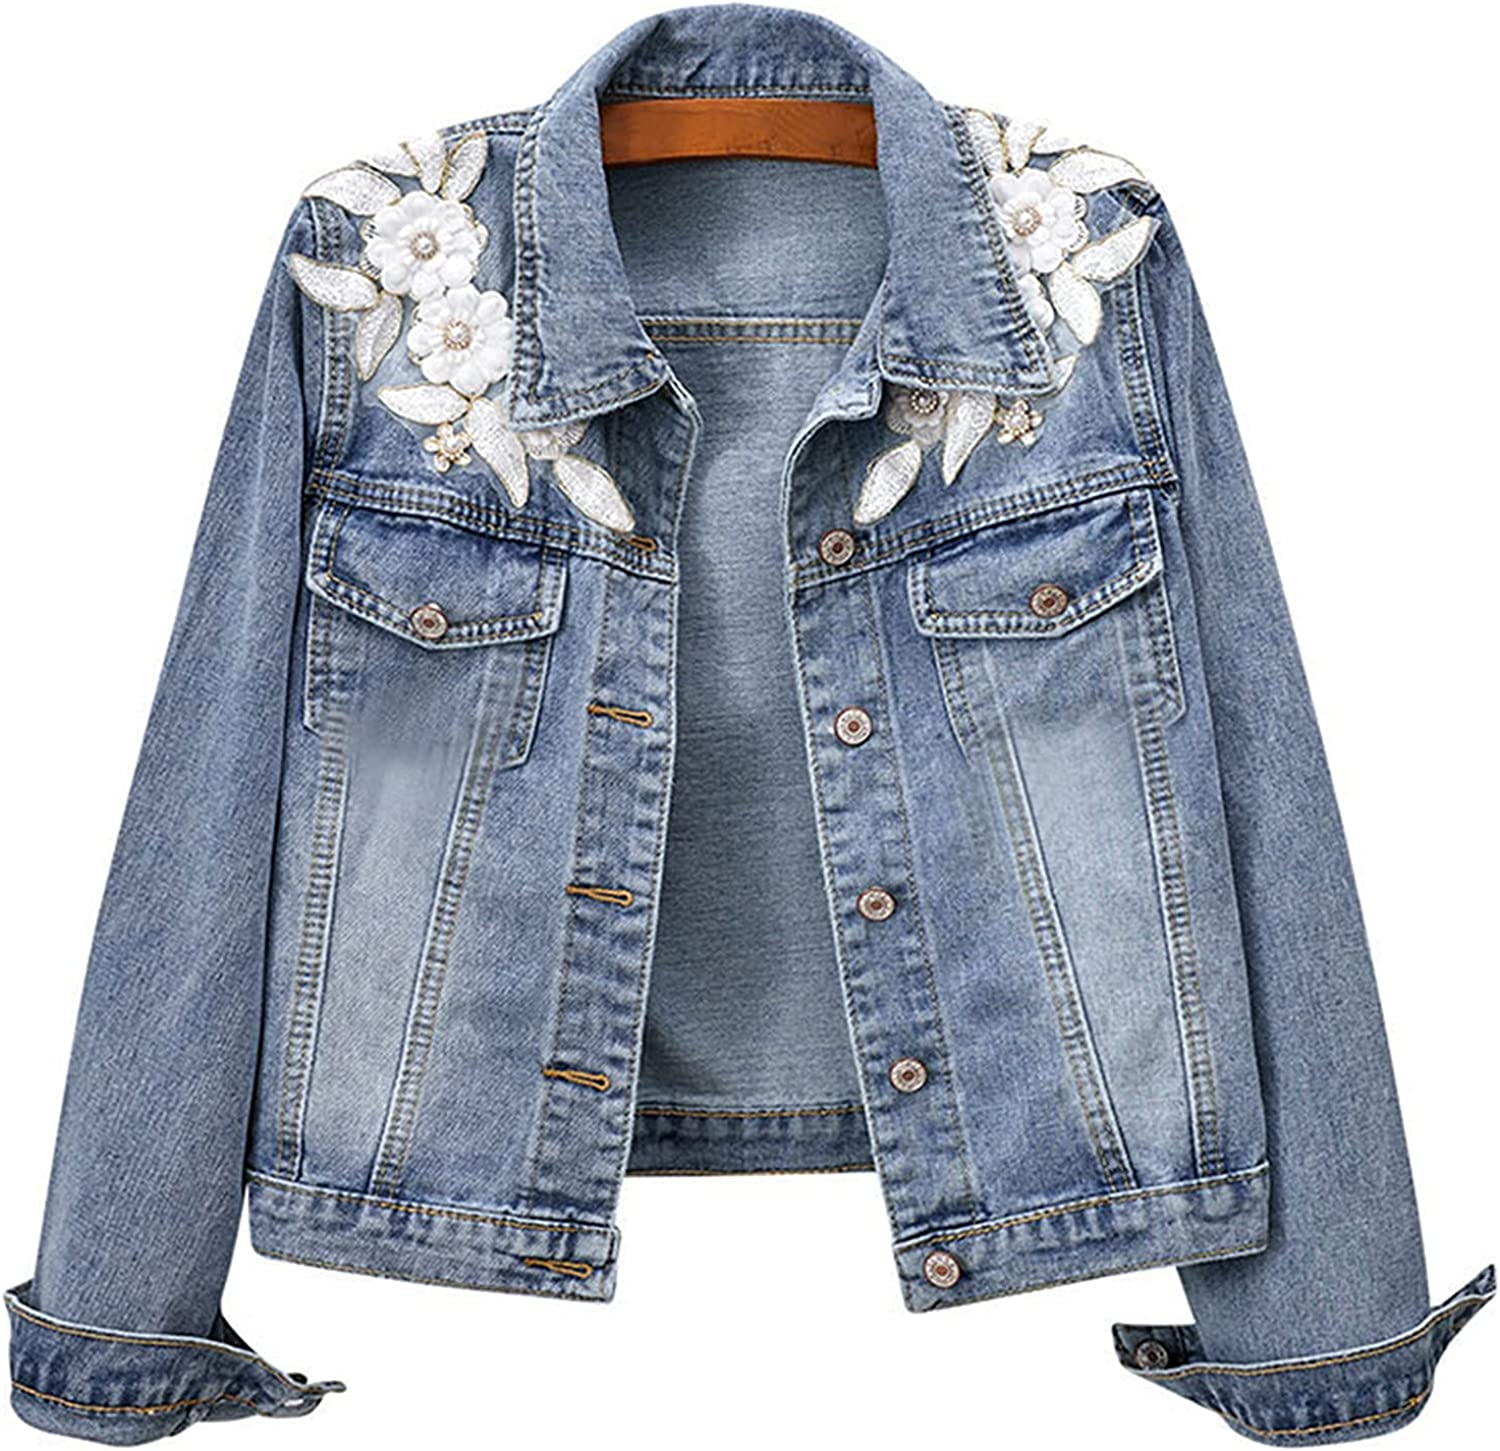 3D Floral Appliqued Short Jeans Jackets Embroidery Luxurious Pearl Beading Bomber Denim Coat Harajuku Outwear